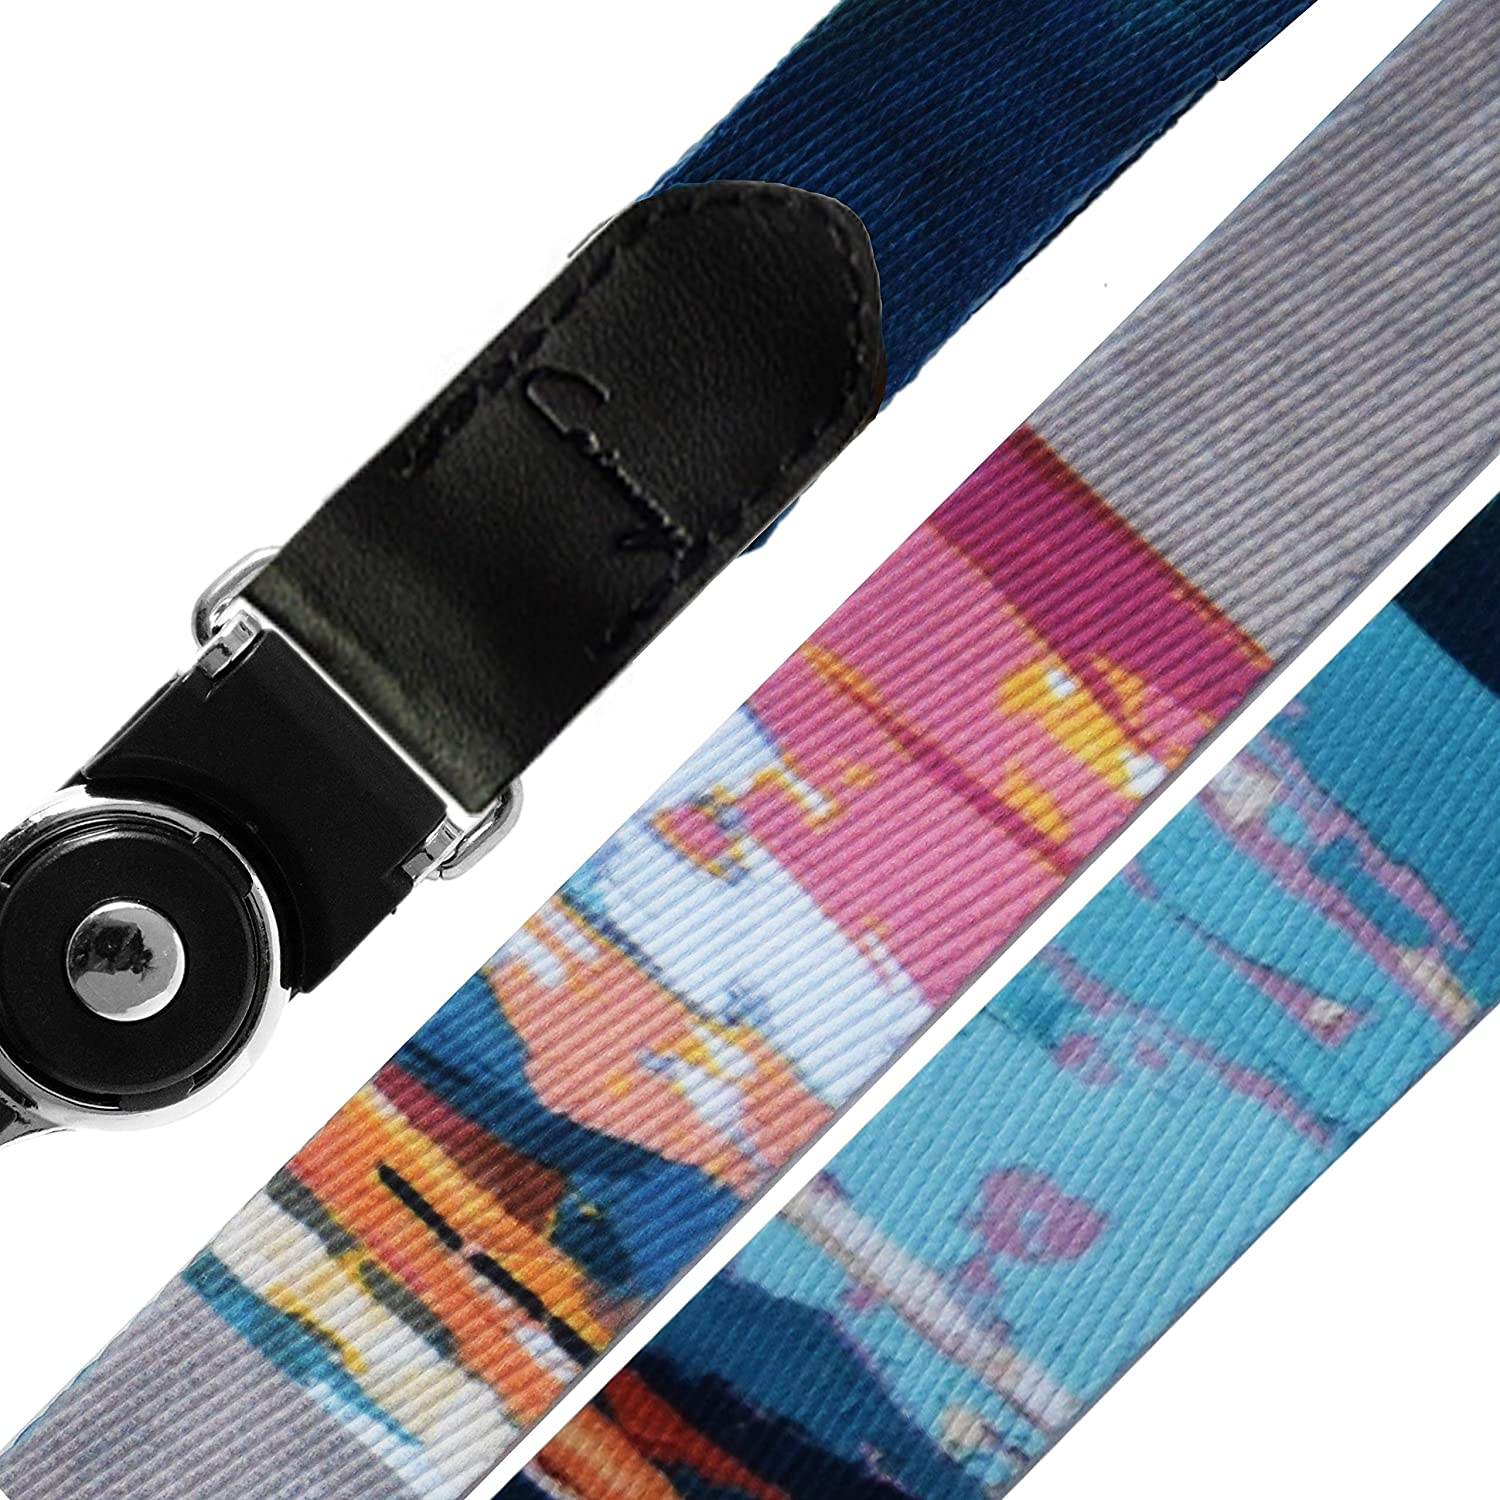 iPod Double Sided Neck Strap Band Lanyards for Camera Cell Phone USB Crimmy Detachable Cell Phone Neck Lanyard 010 Flash Drive Universal